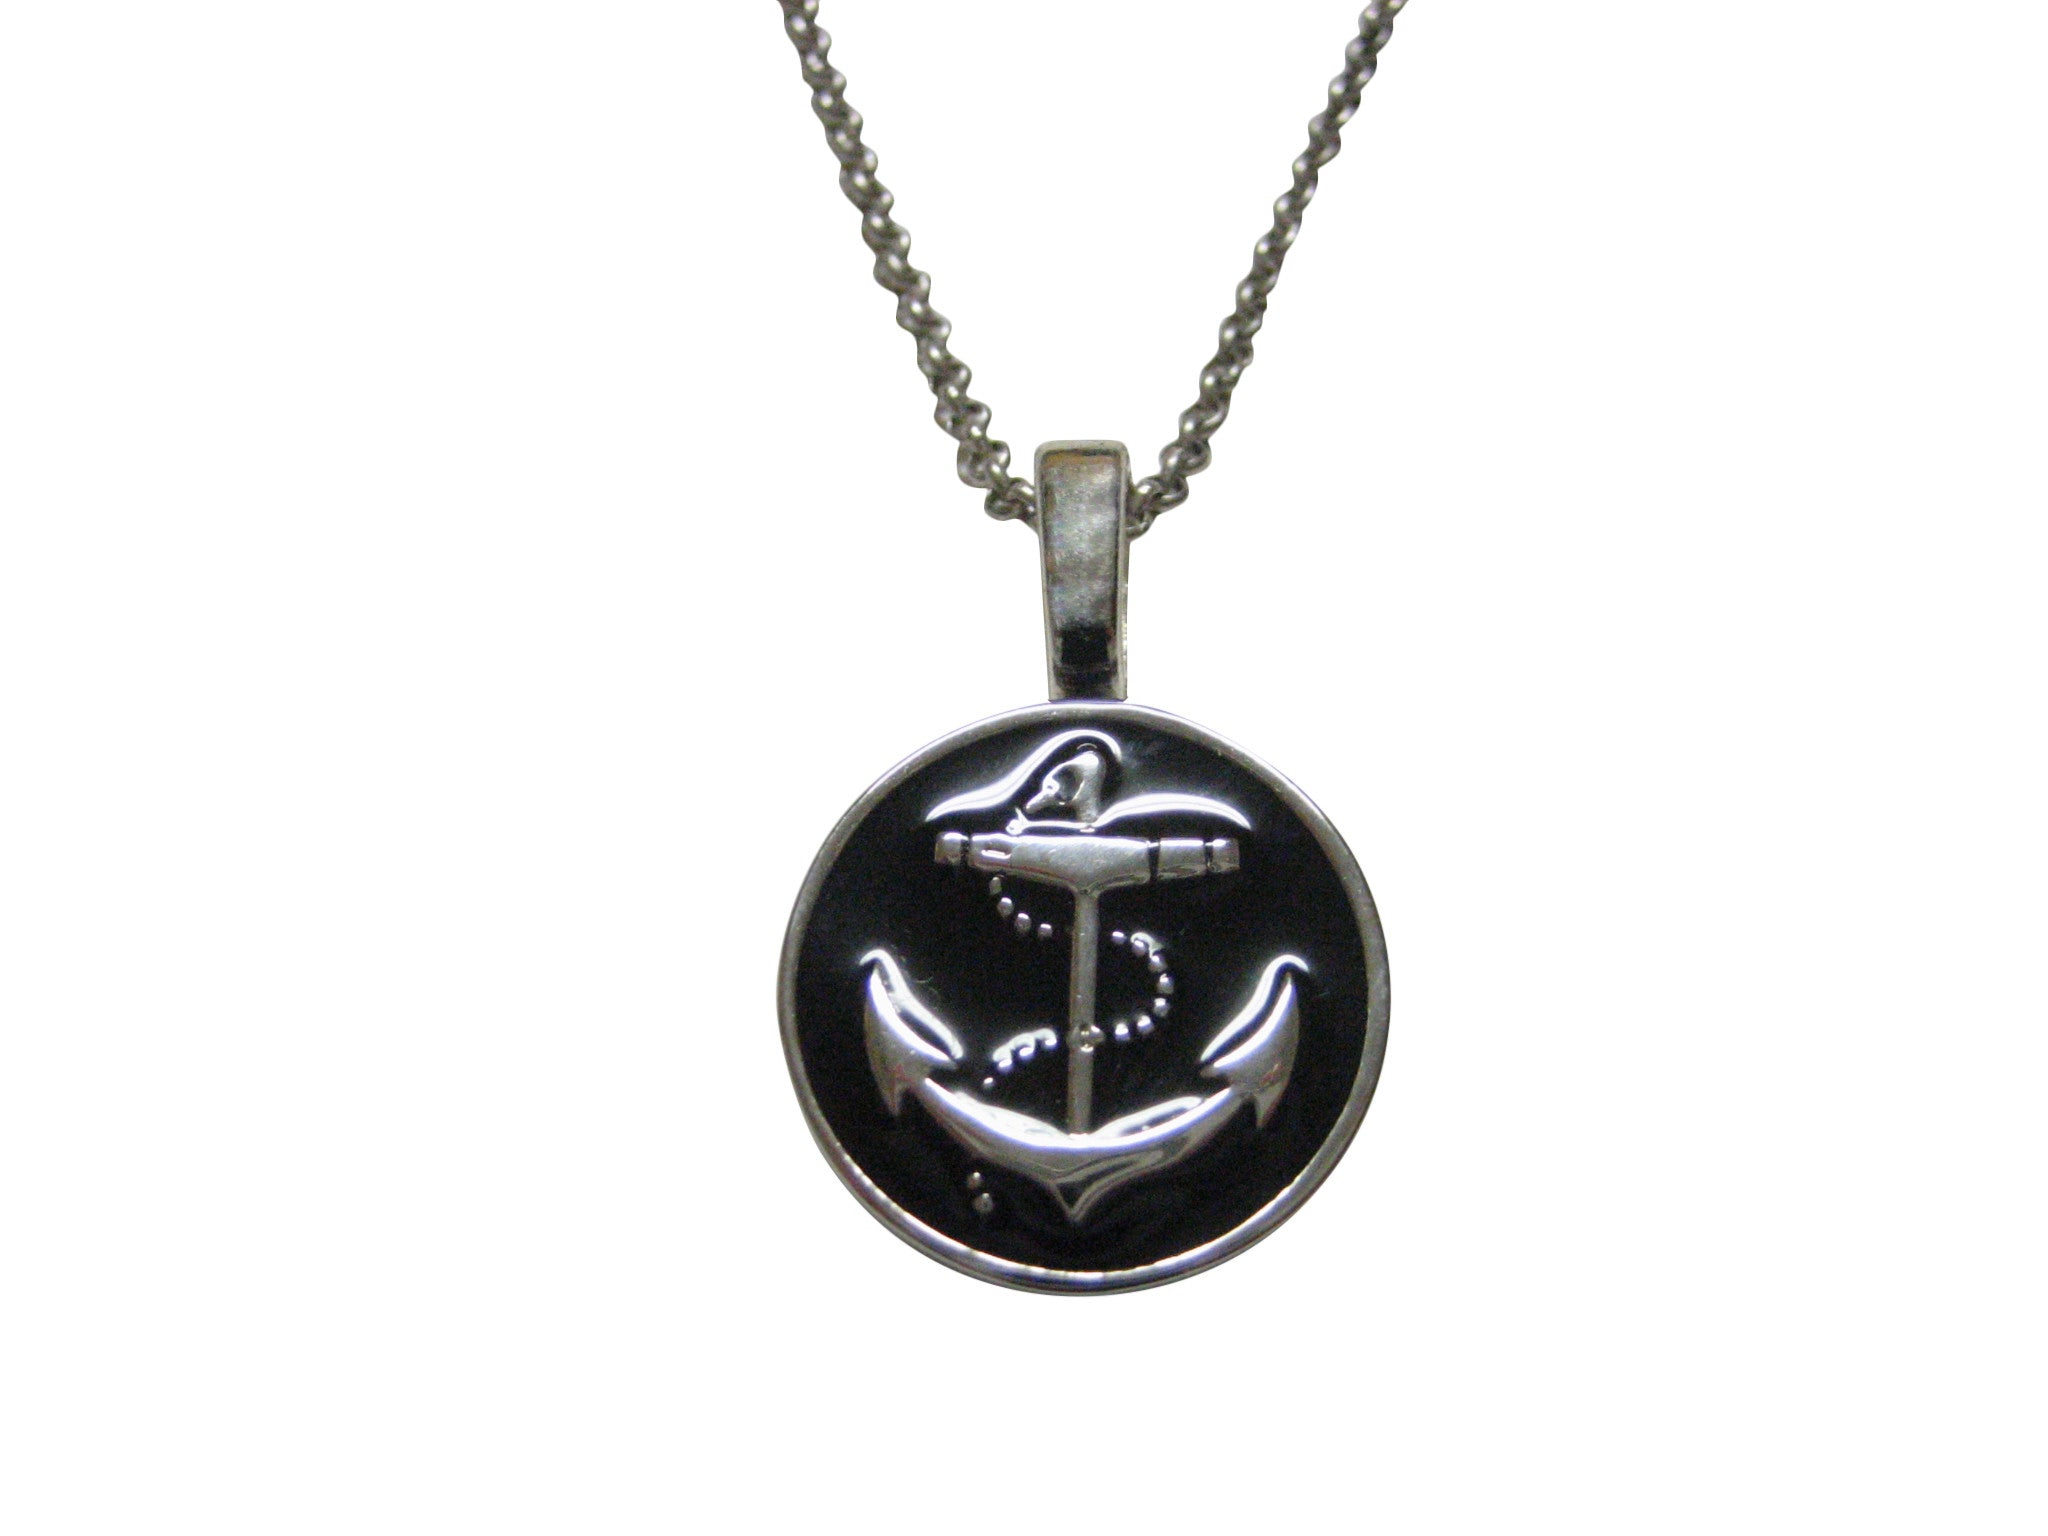 Nautical Black Anchor Pendant Necklace